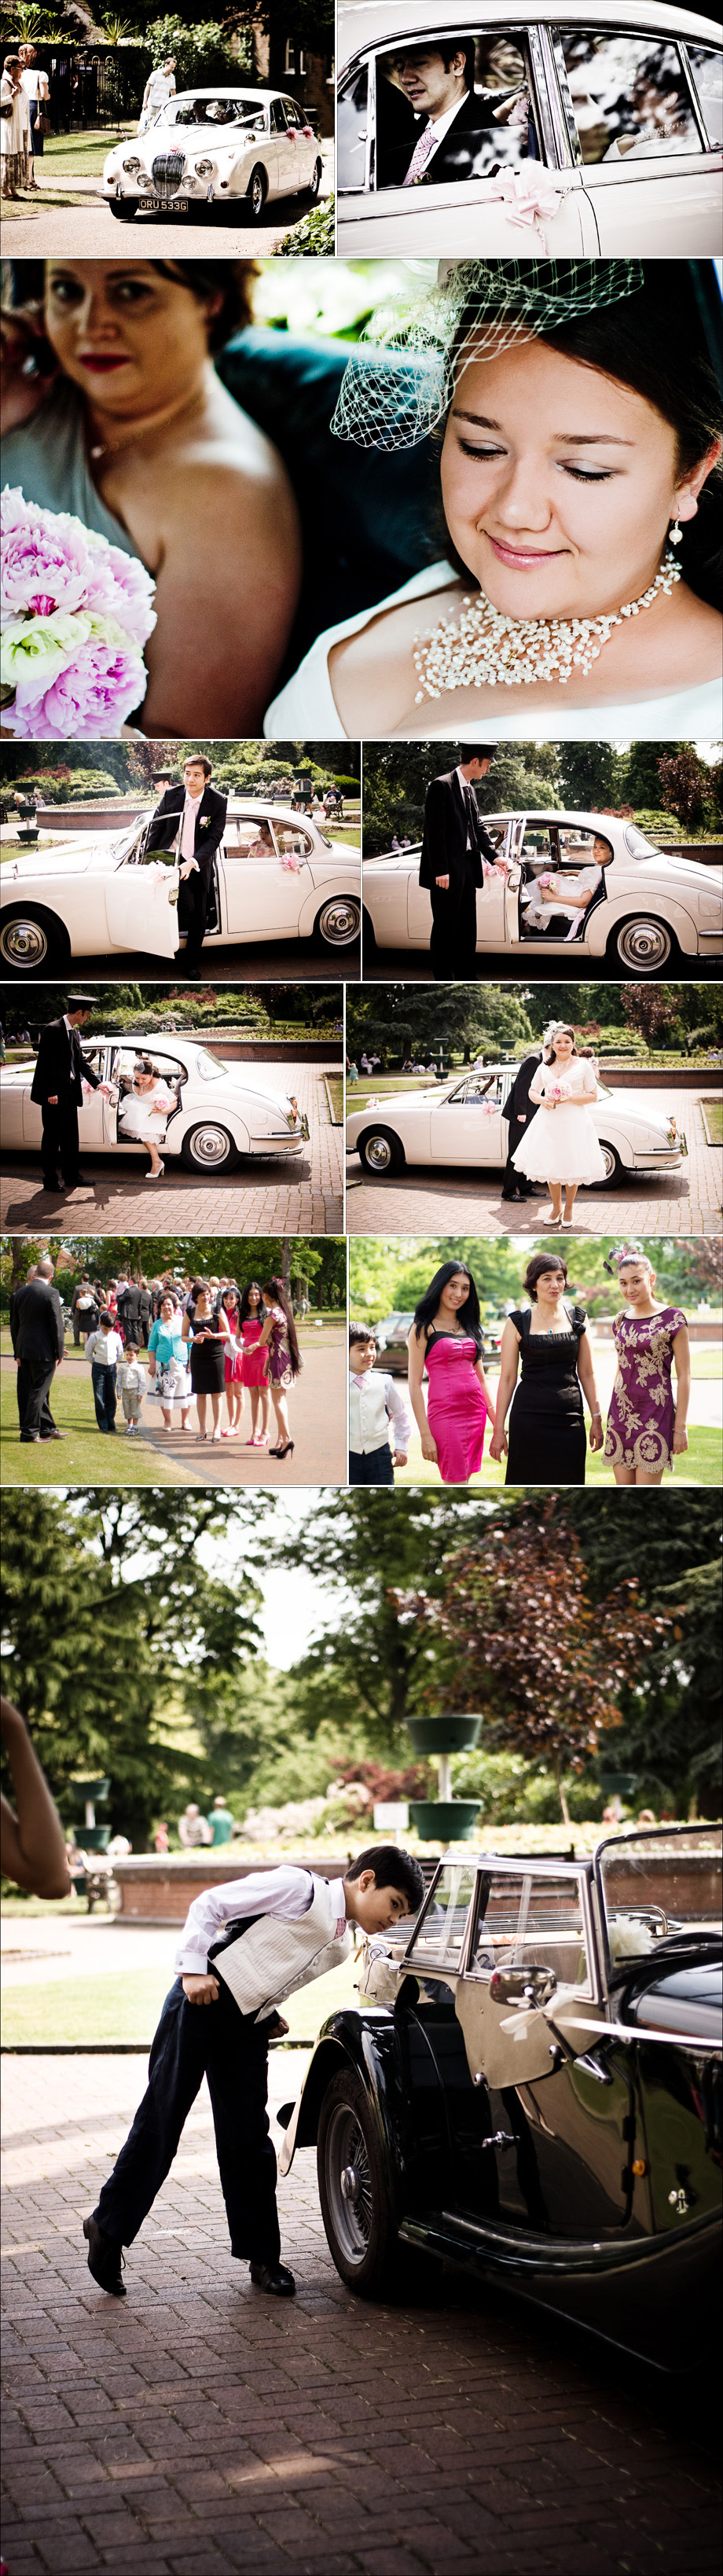 Brides arrival in vintage car